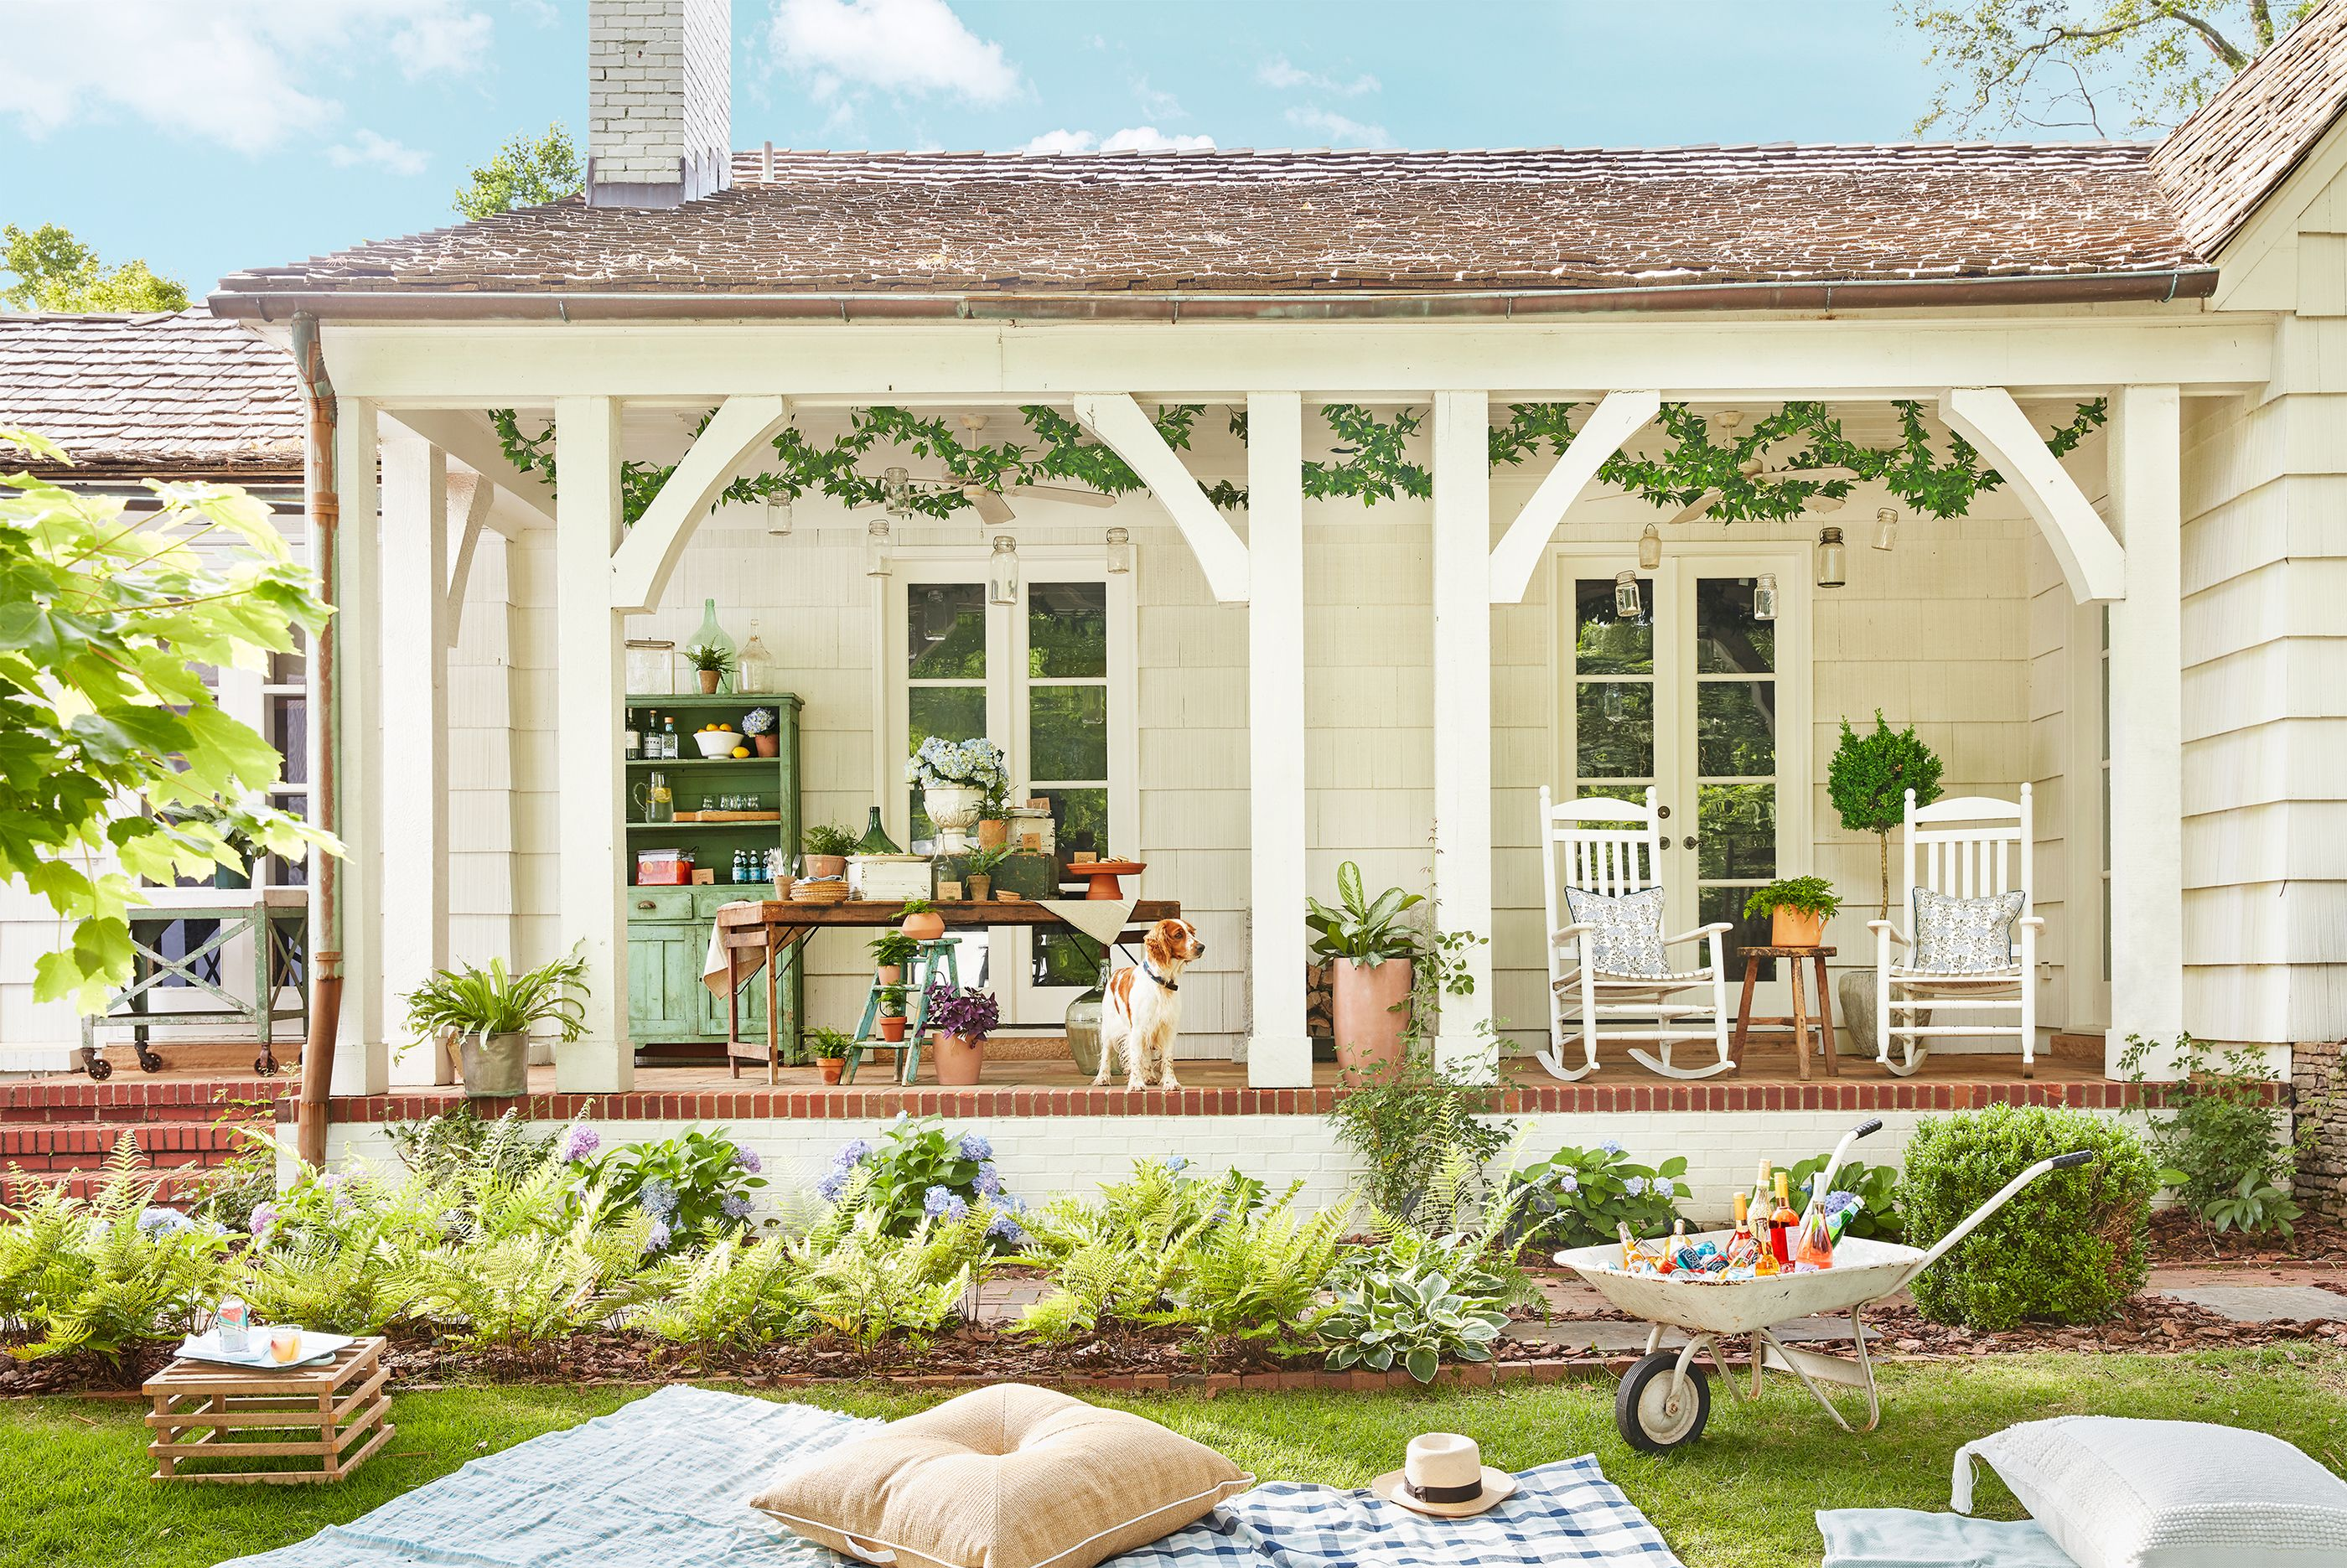 House Beautiful & 28 Charming Front Porch Ideas - Chic Porch Design and Decorating Tips